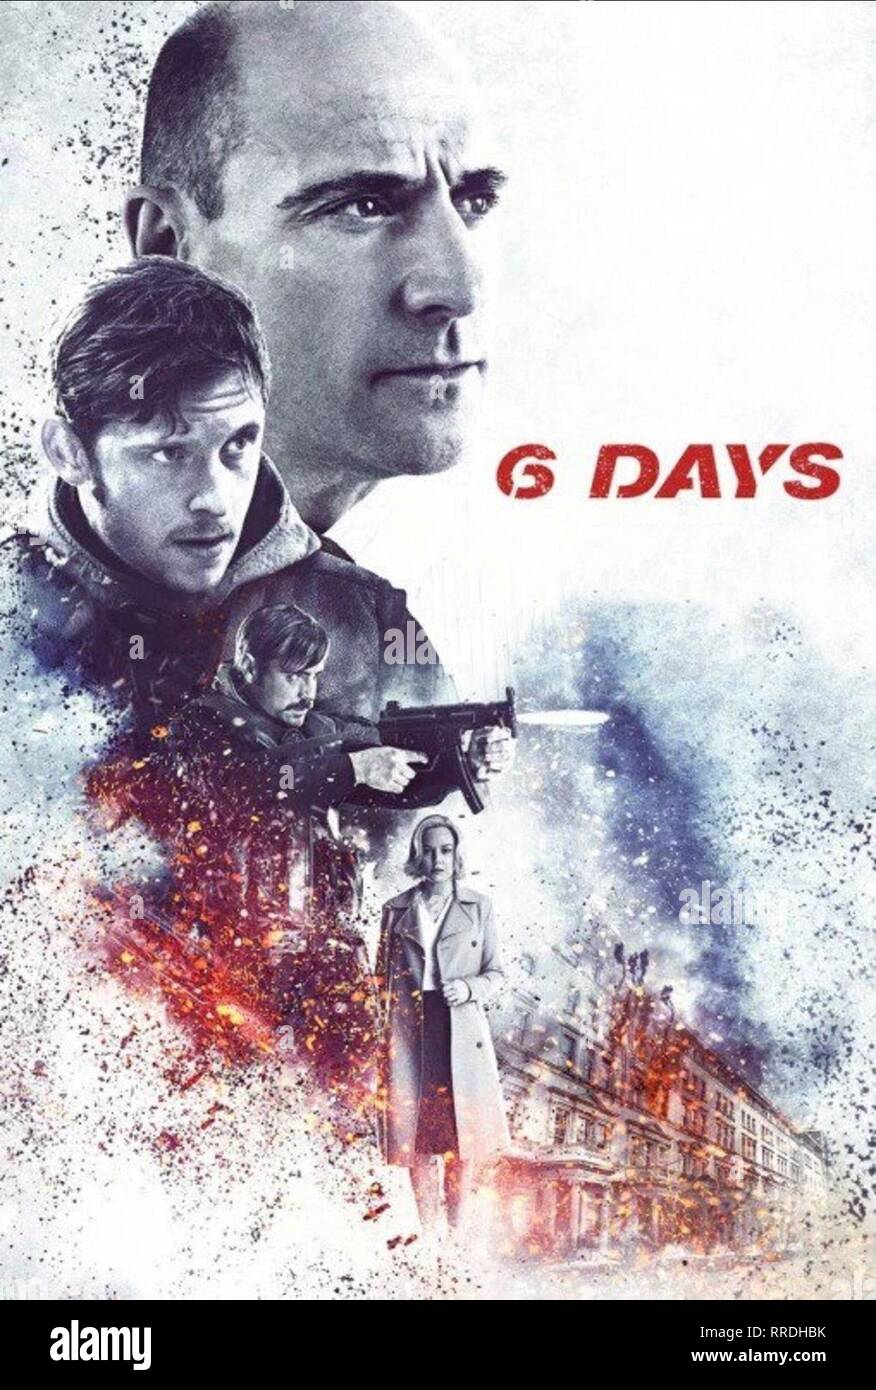 6 DAYS, JAMIE BELL, MARK STRONG, EMUN ELLIOTT , ABBIE CORNISH POSTER, 2017 - Stock Image